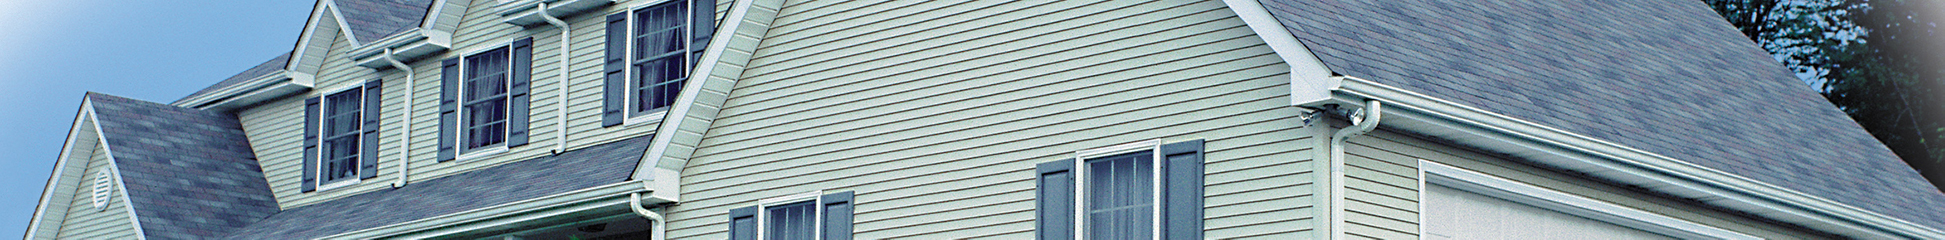 Ultra Siding Mrv Siding Supply